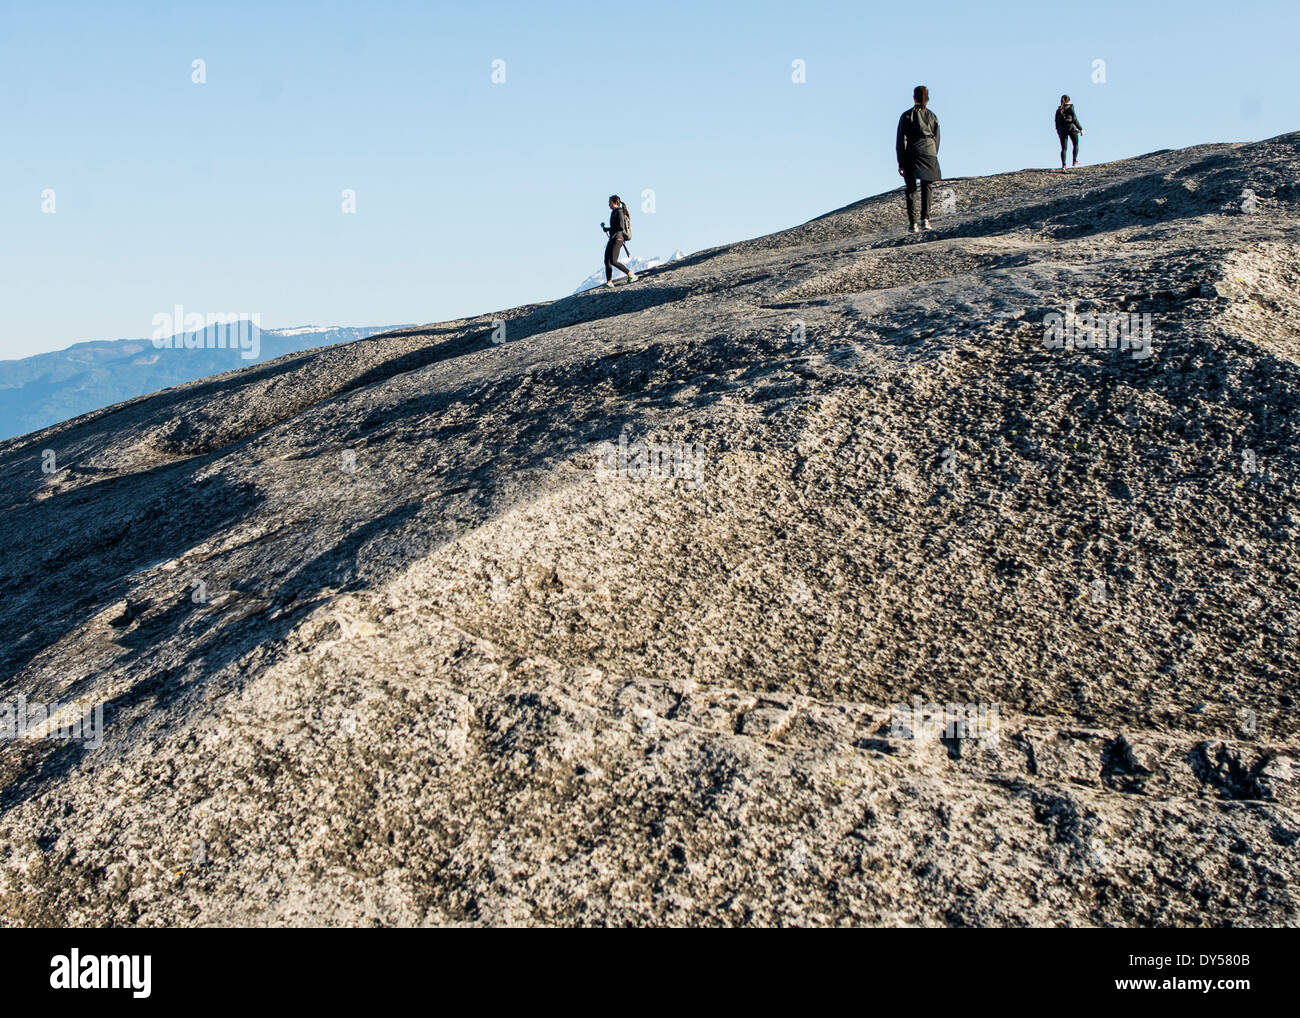 Three young female hikers on rock, Squamish, British Columbia, Canada - Stock Image